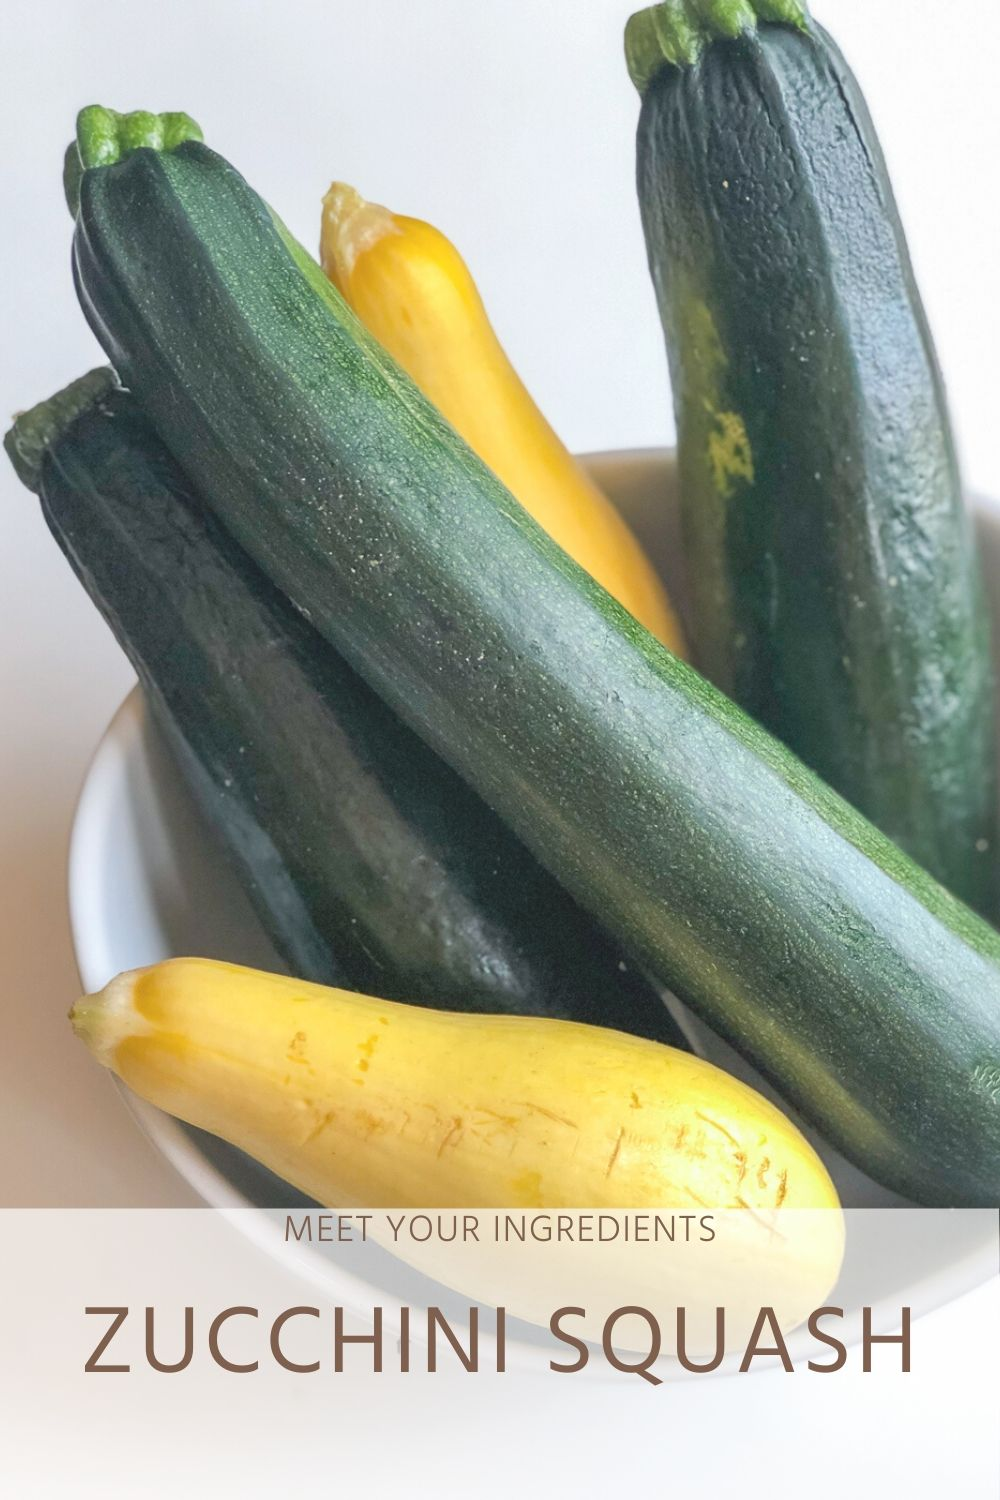 Dietitian Guide to Zucchini